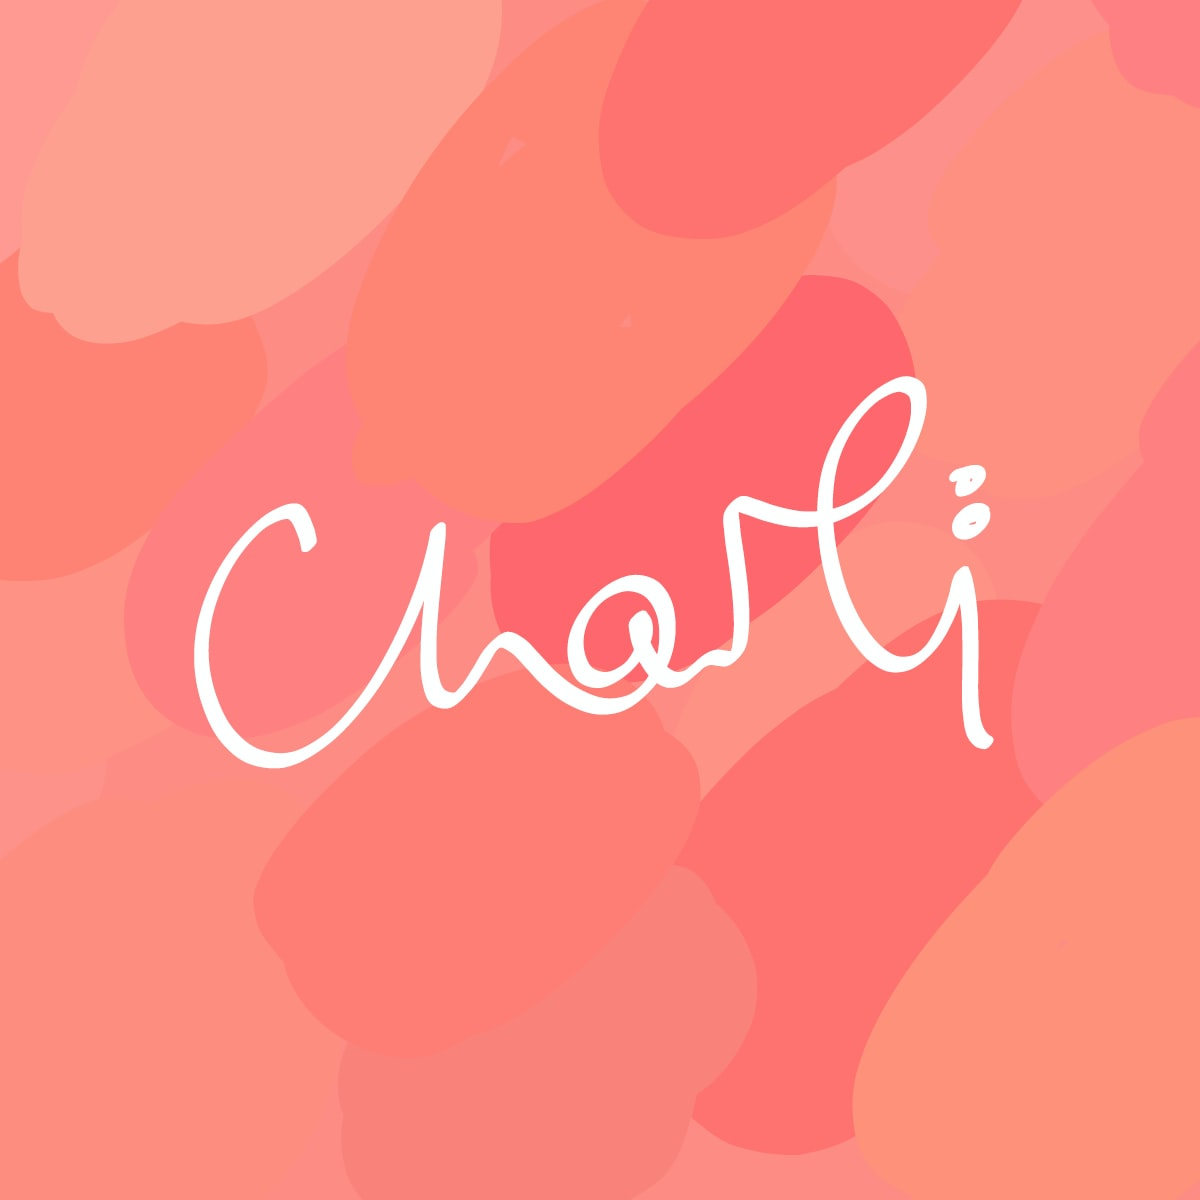 Go to CHARLI's profile